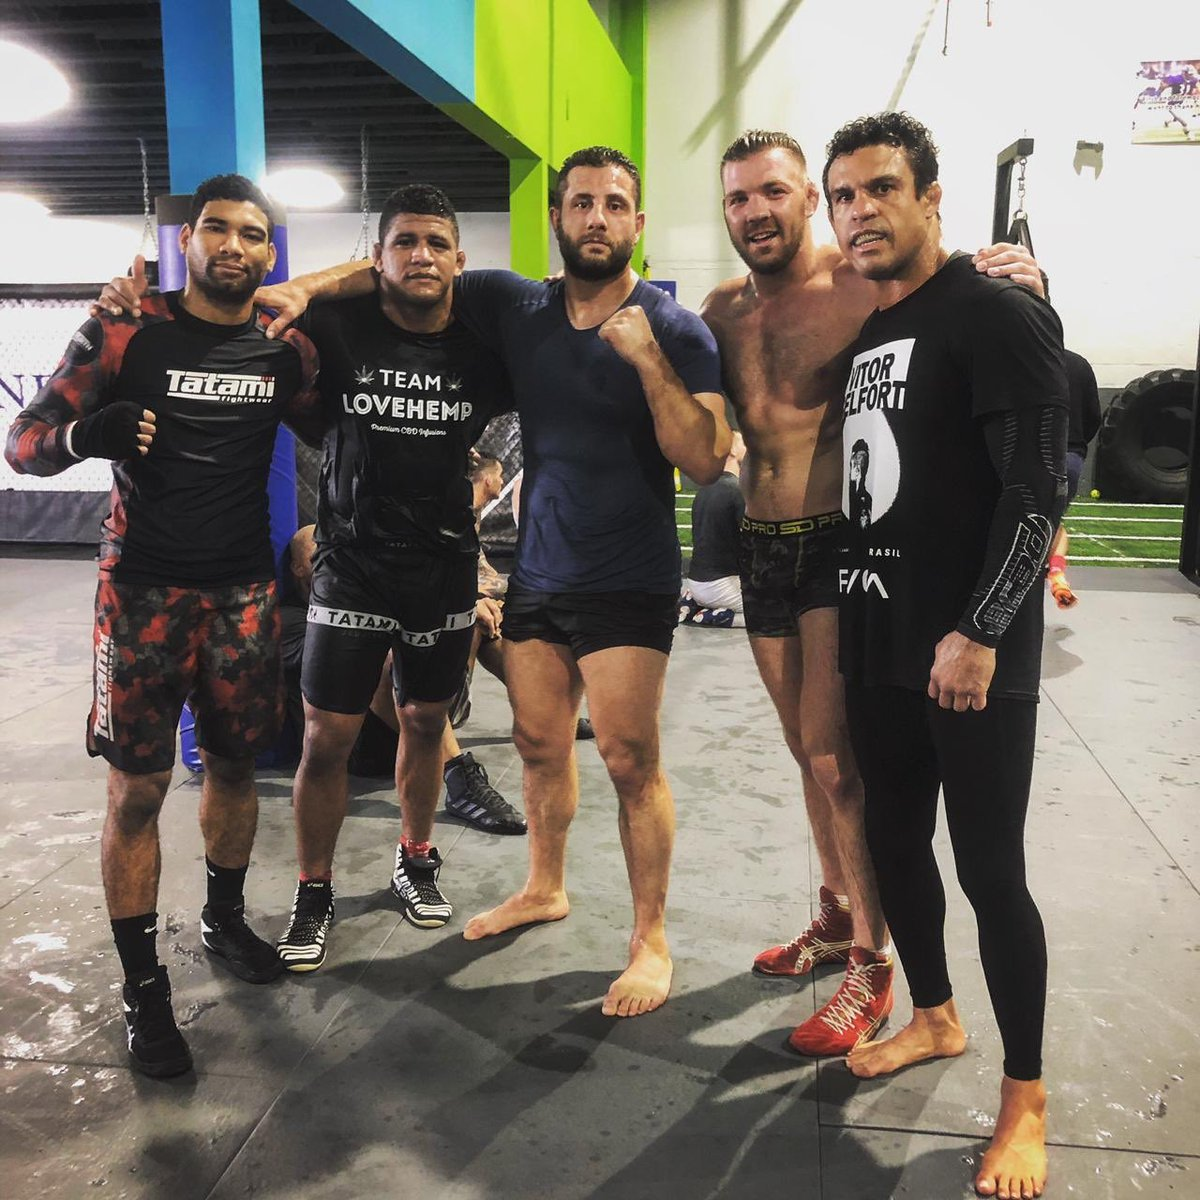 From posters on the wall to training alongside these heroes. Awesome wrestling session in @hardknocks365! 👊 https://t.co/xuUtLKamYd